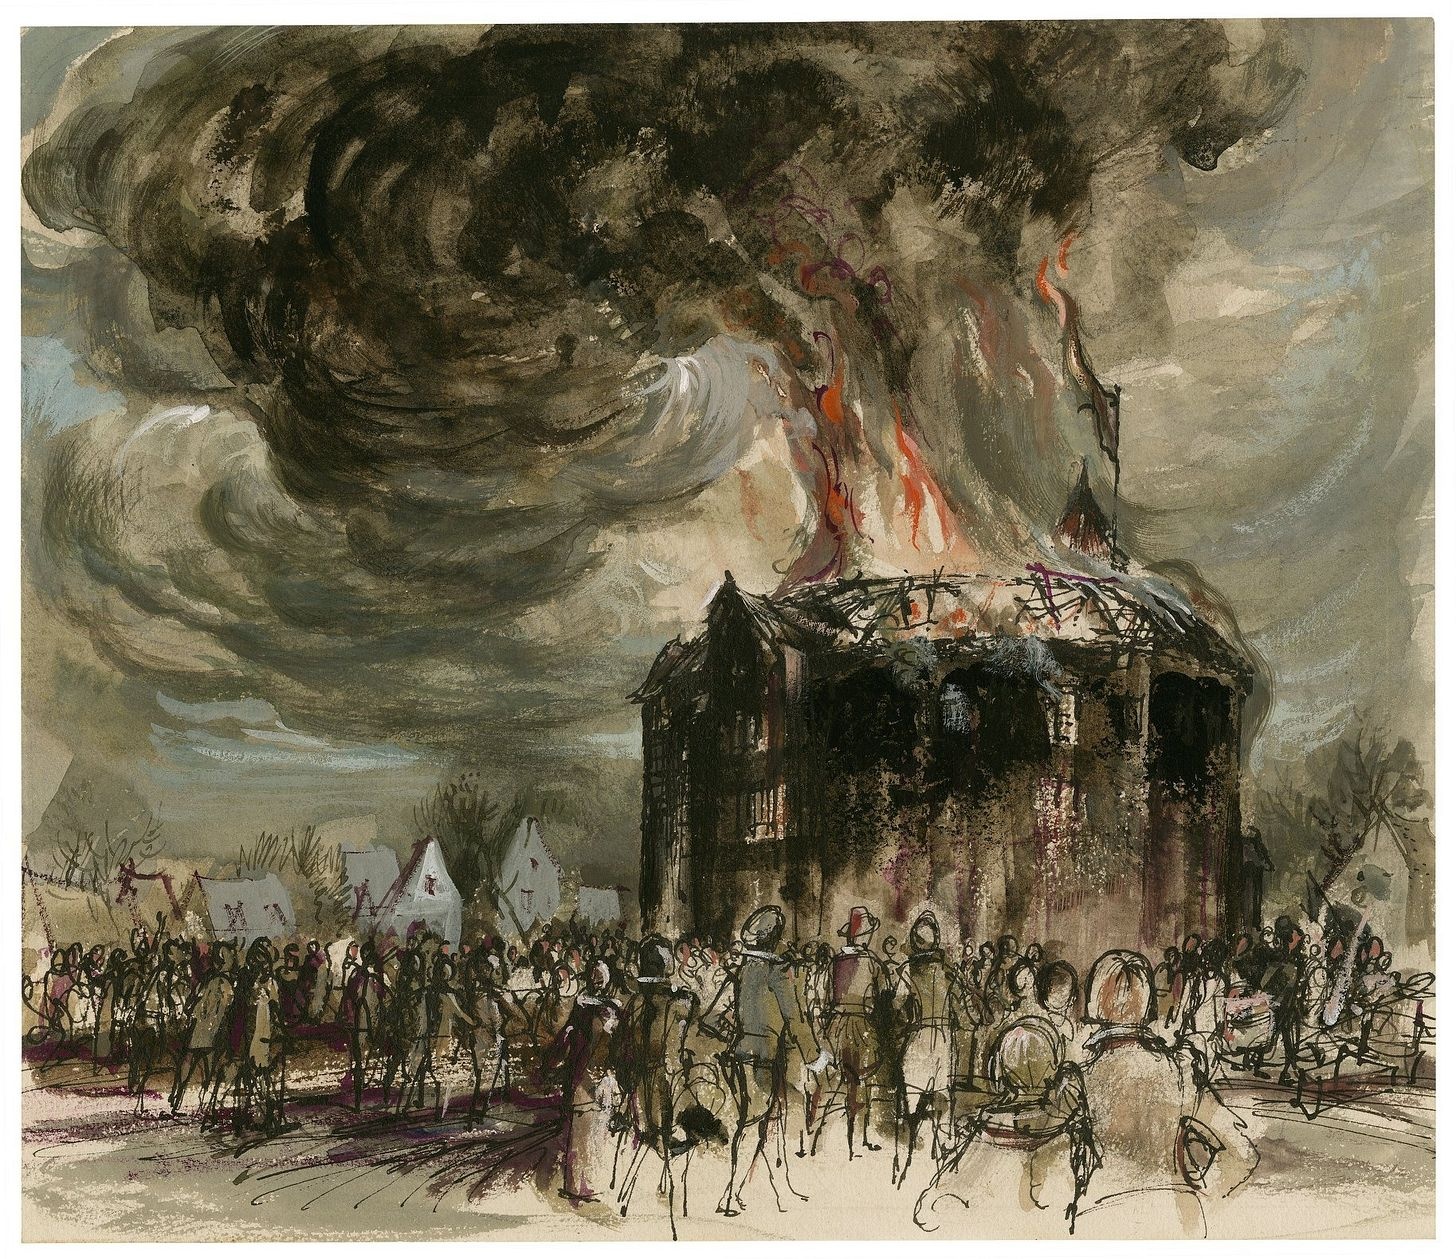 Watercolor illustration of the Globe burning by C. Walter Hodges.